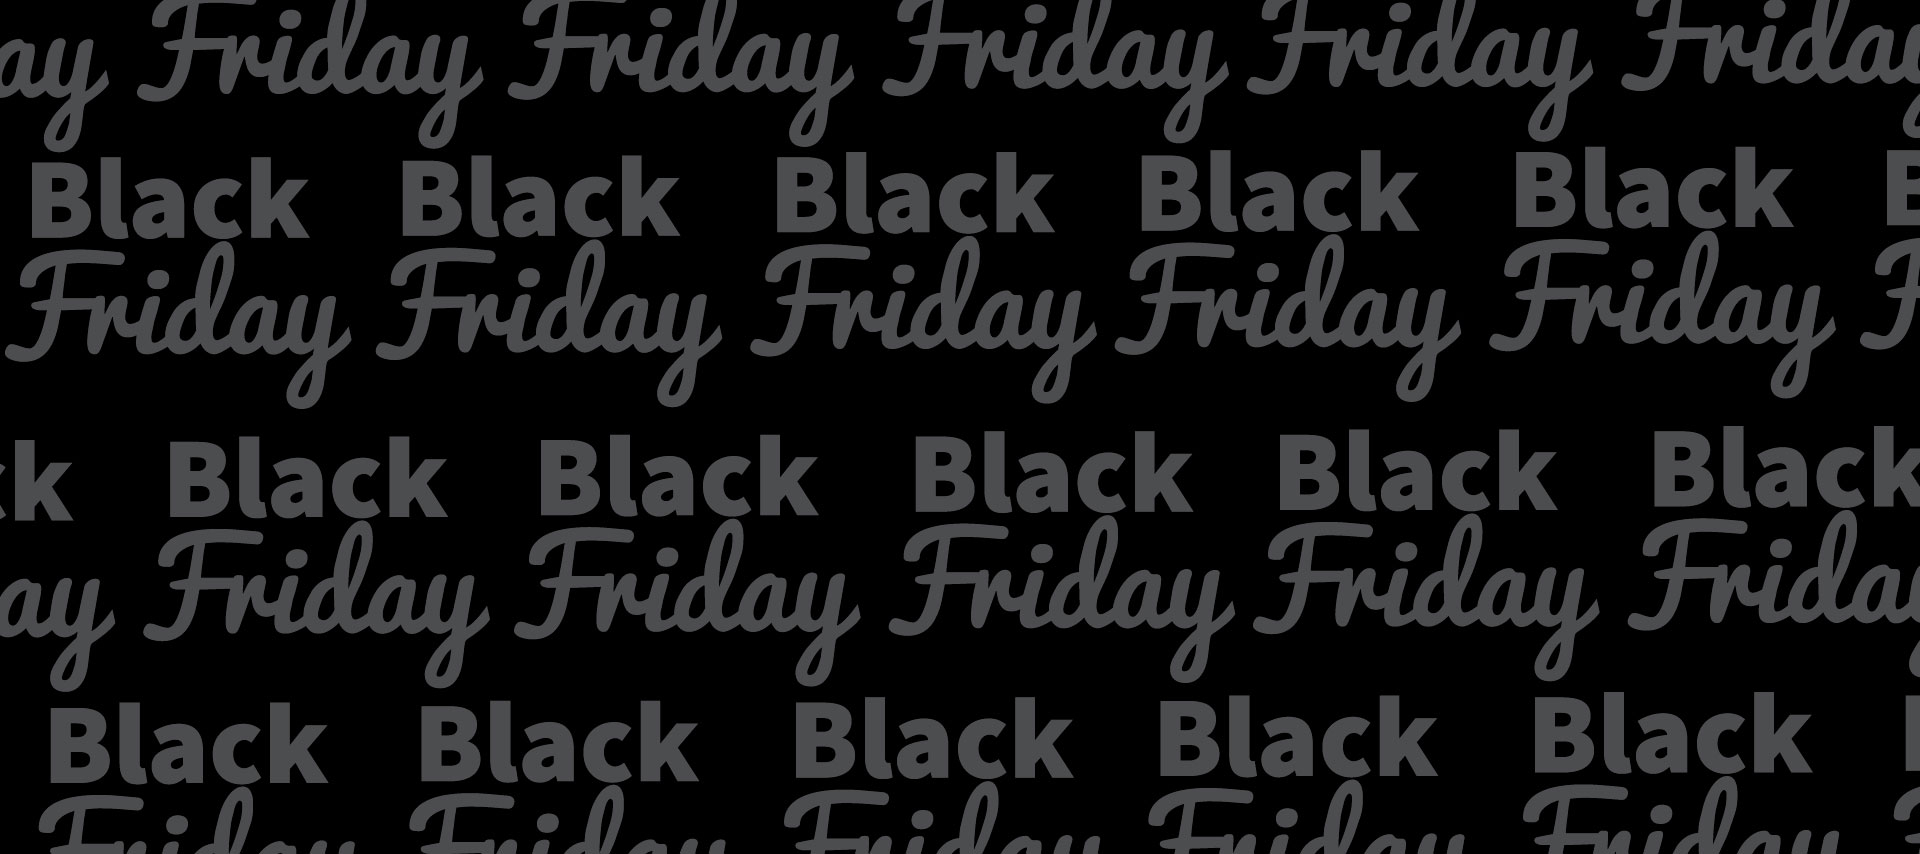 Black friday da All For Music una settimana di sconti folli su strumenti musicali